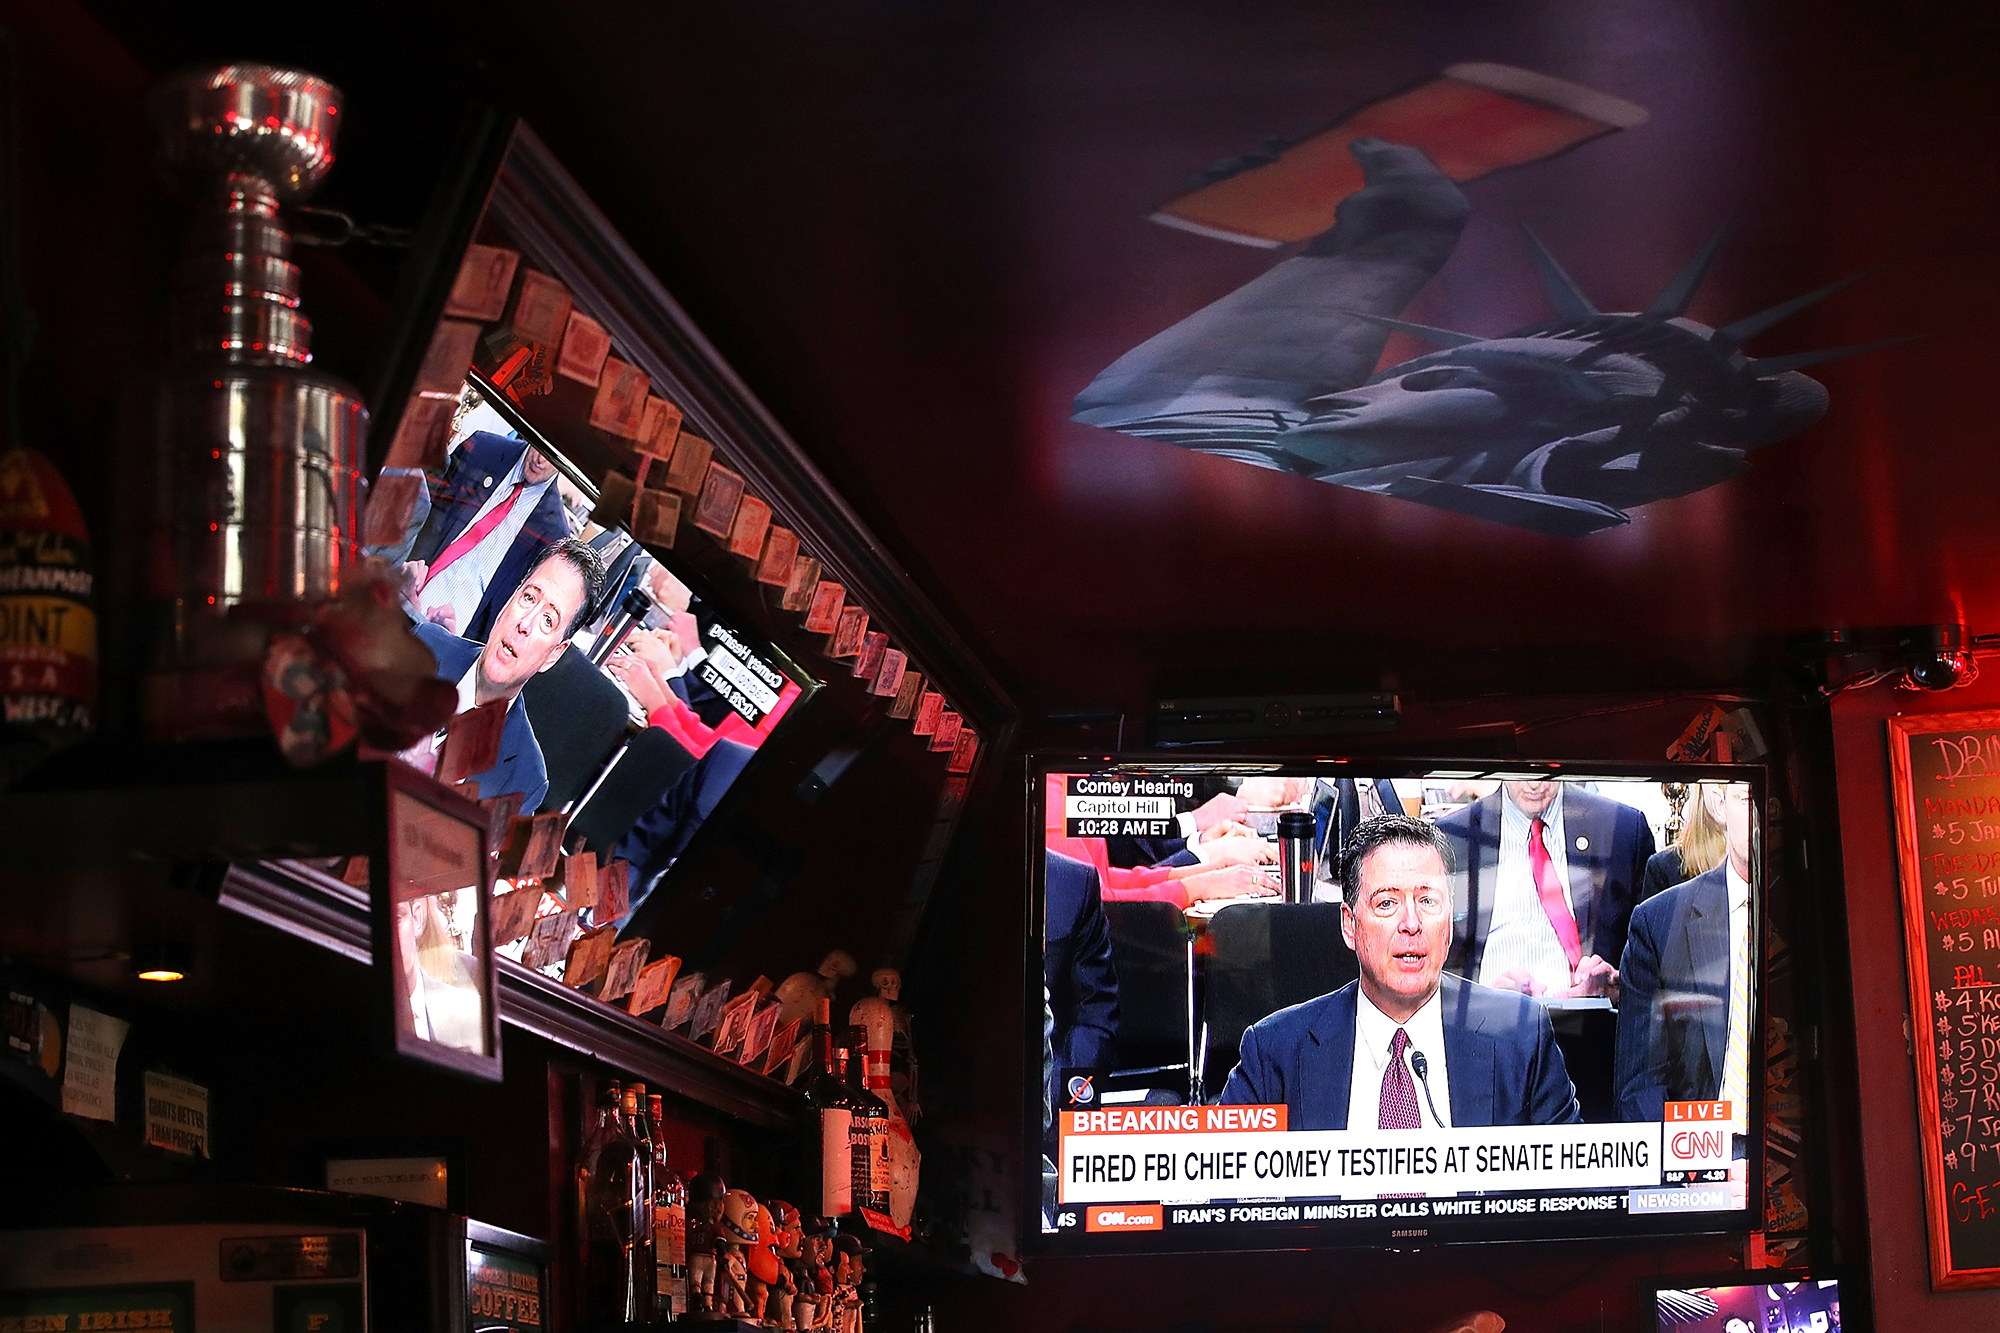 A television broadcast of former FBI Director James Comey testimony before the Senate Intelligence Committee plays at Ace's Bar, on June 8, 2017 in San Francisco.